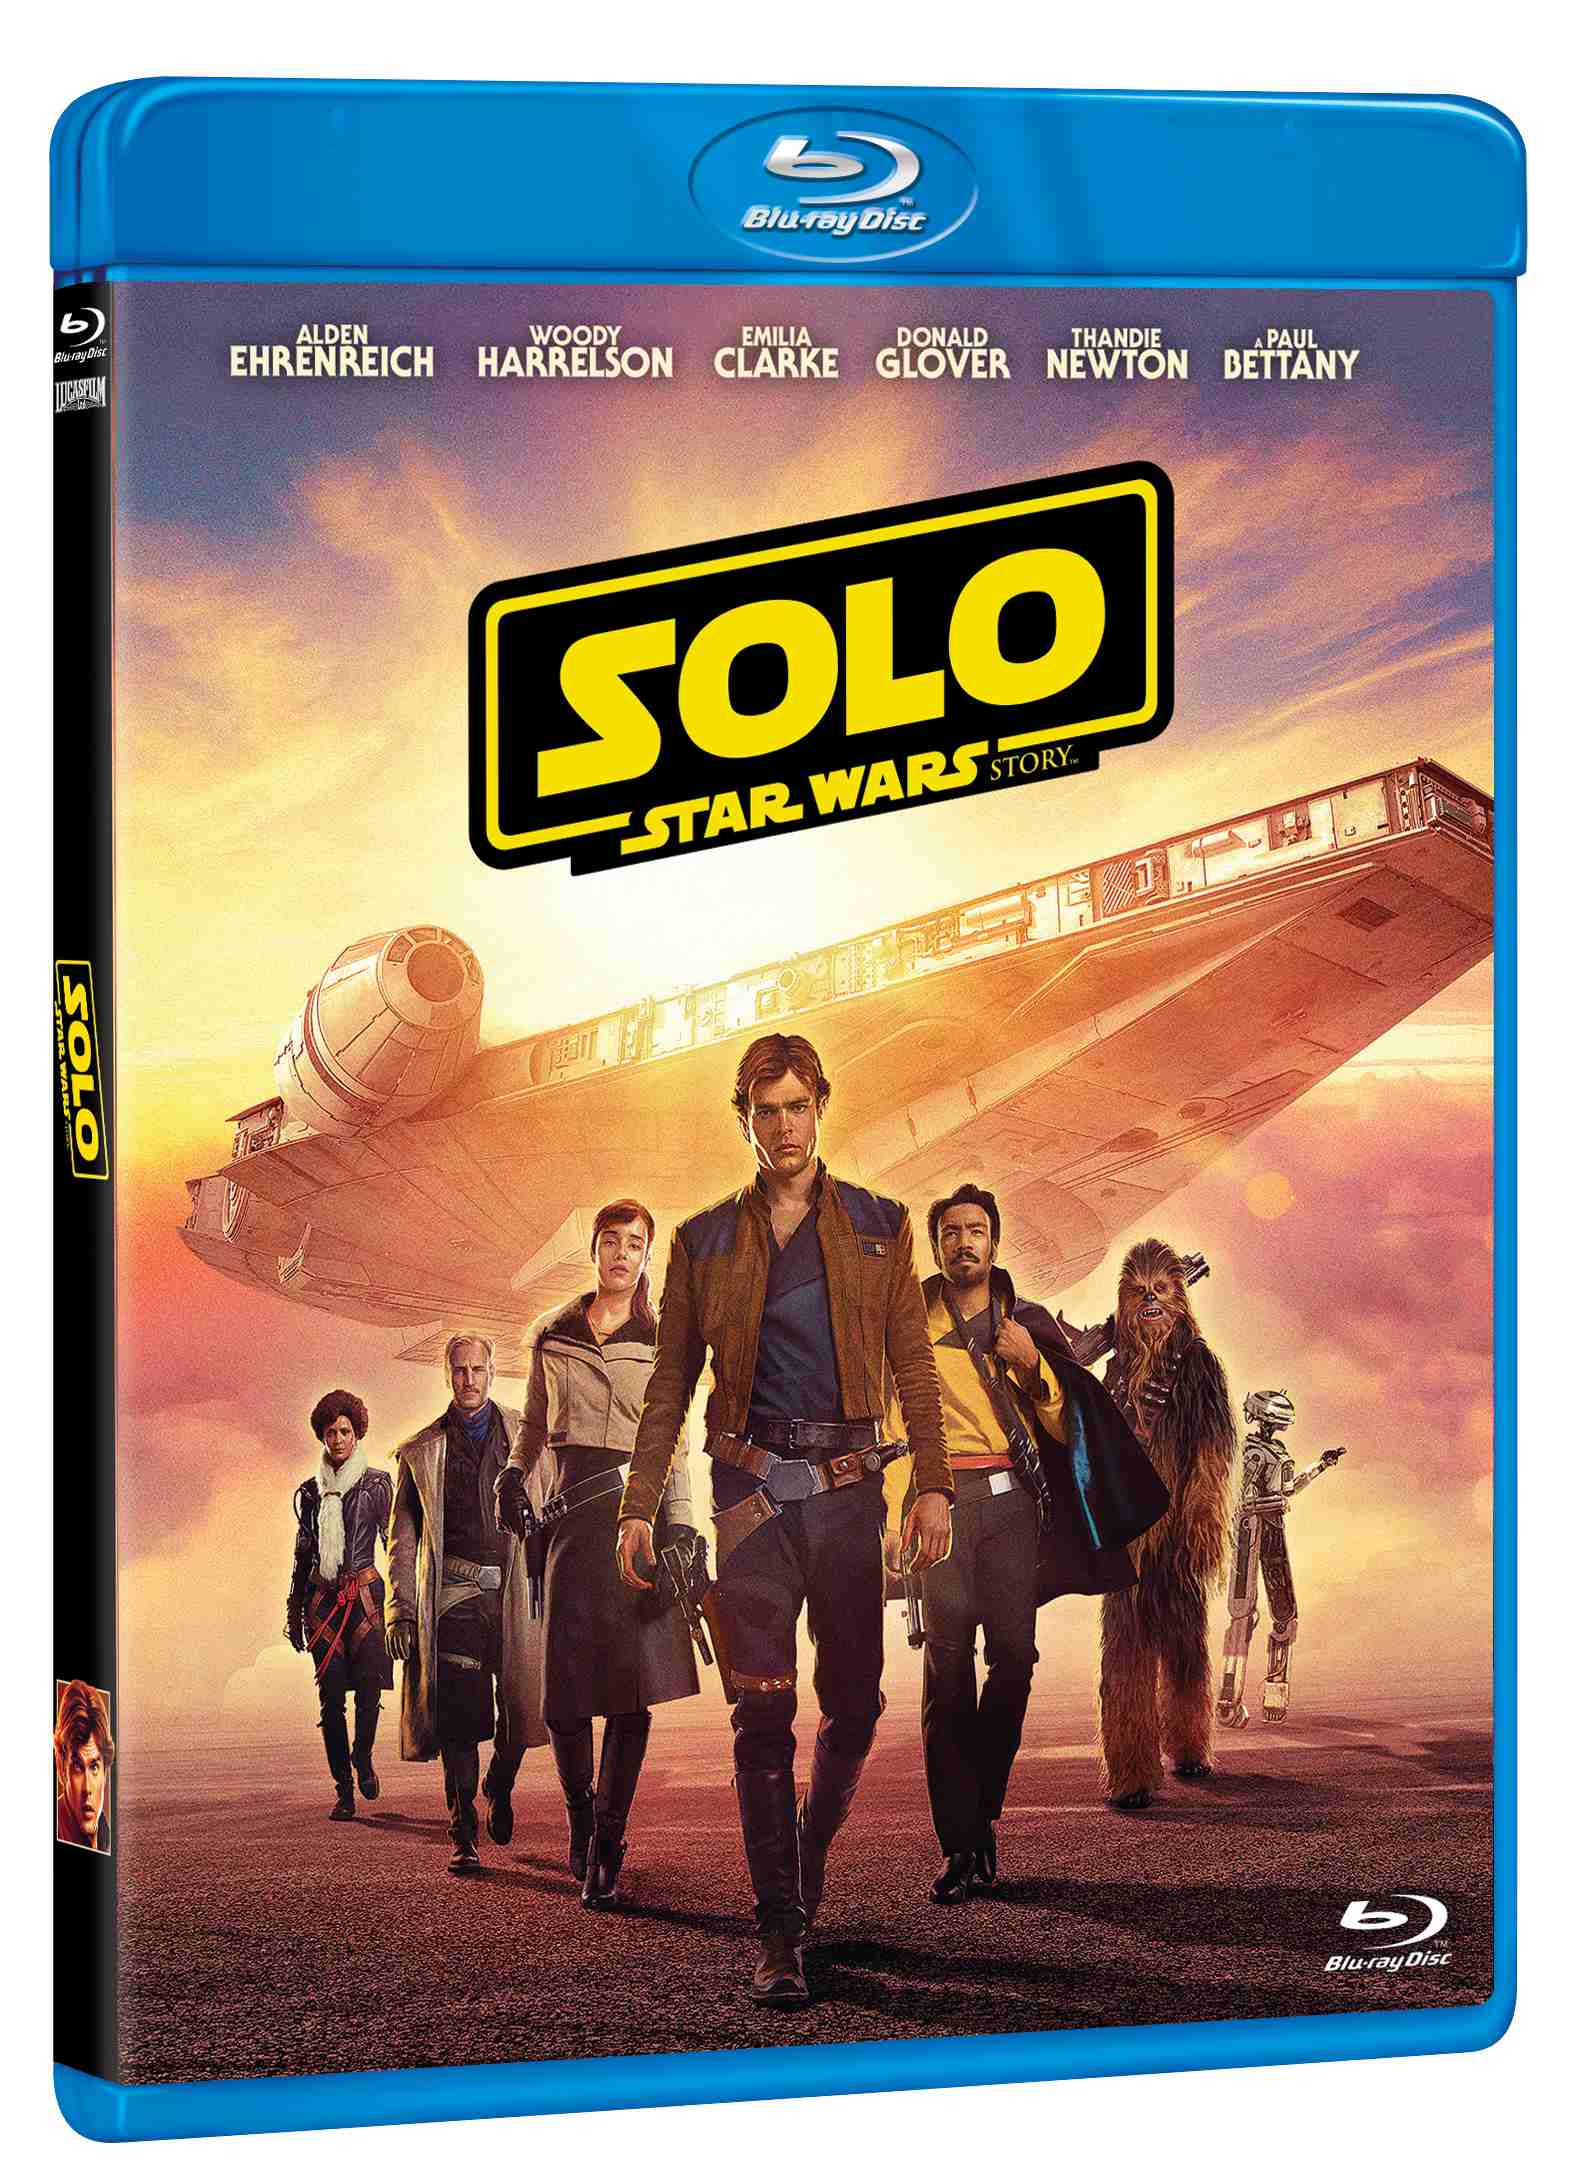 Solo: Star Wars Story - Blu-ray + Bonus Disc